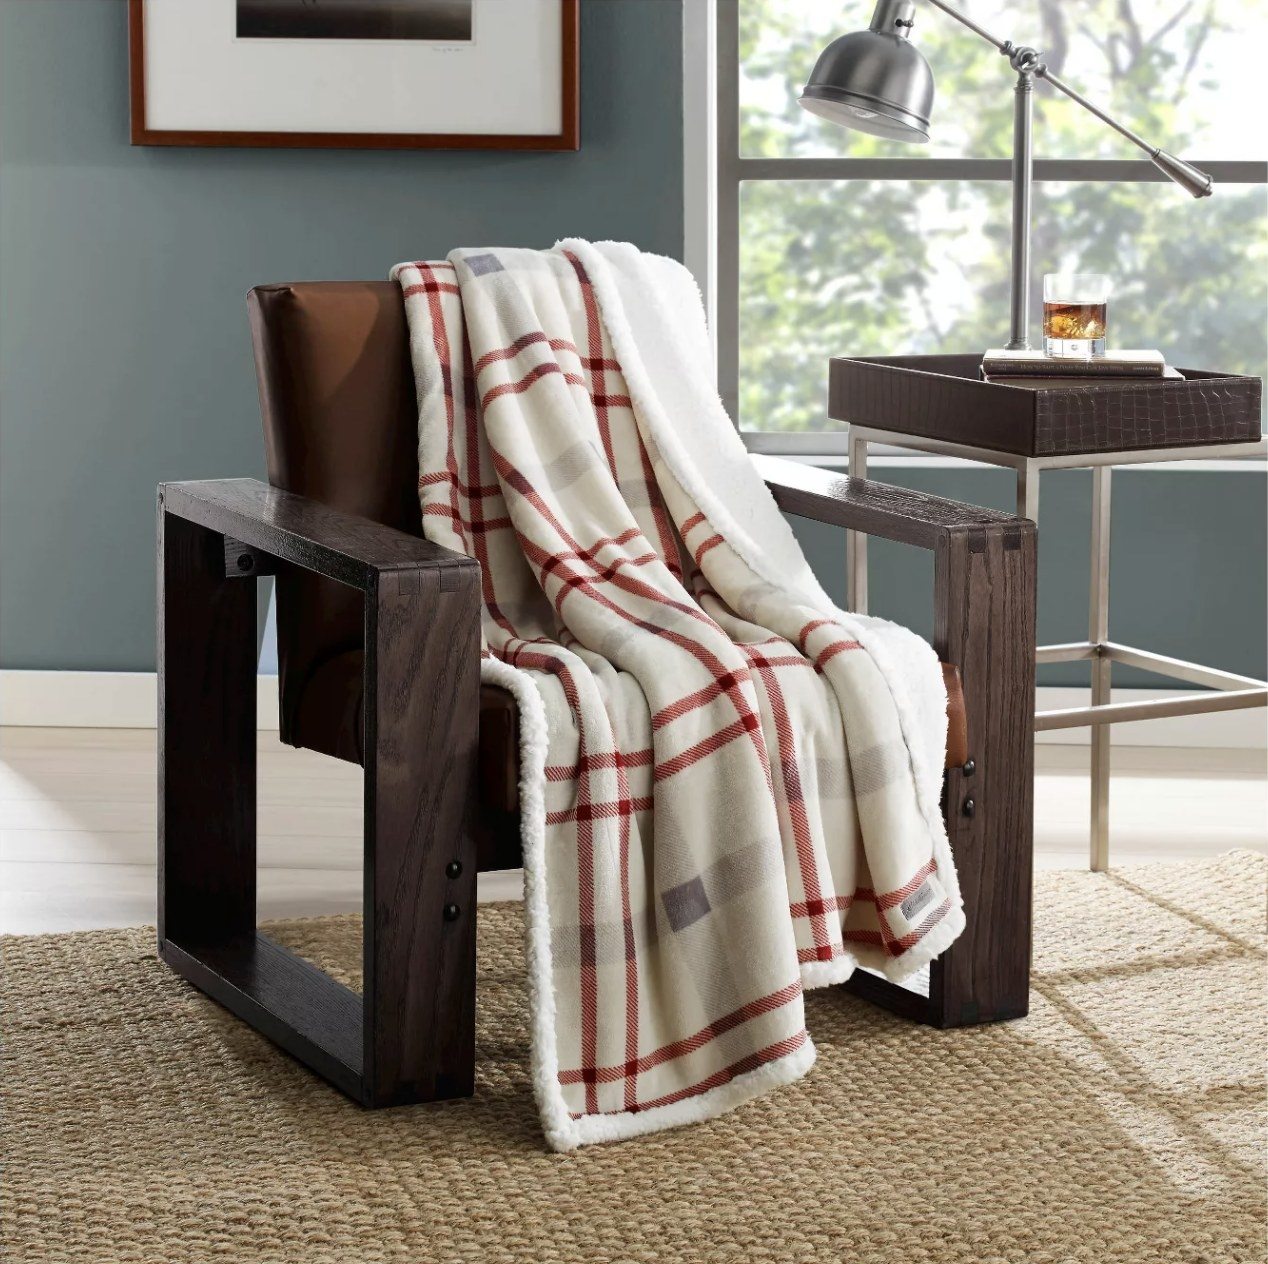 The white throw blanket with red flannel stripes on a chair